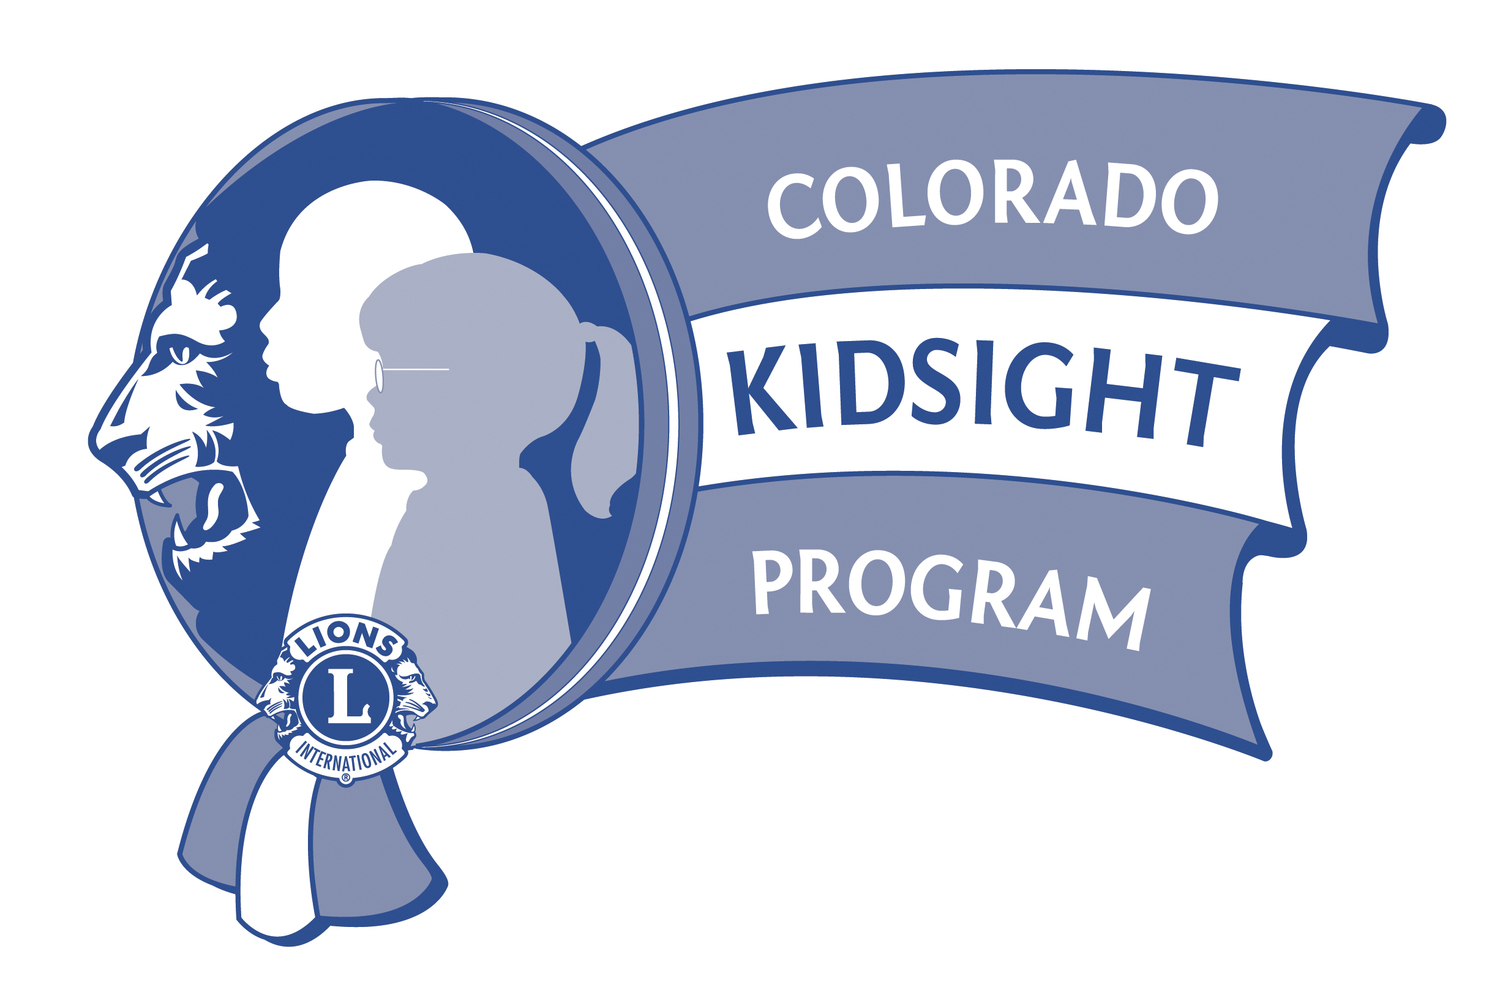 Colorado Lions KidSight Program